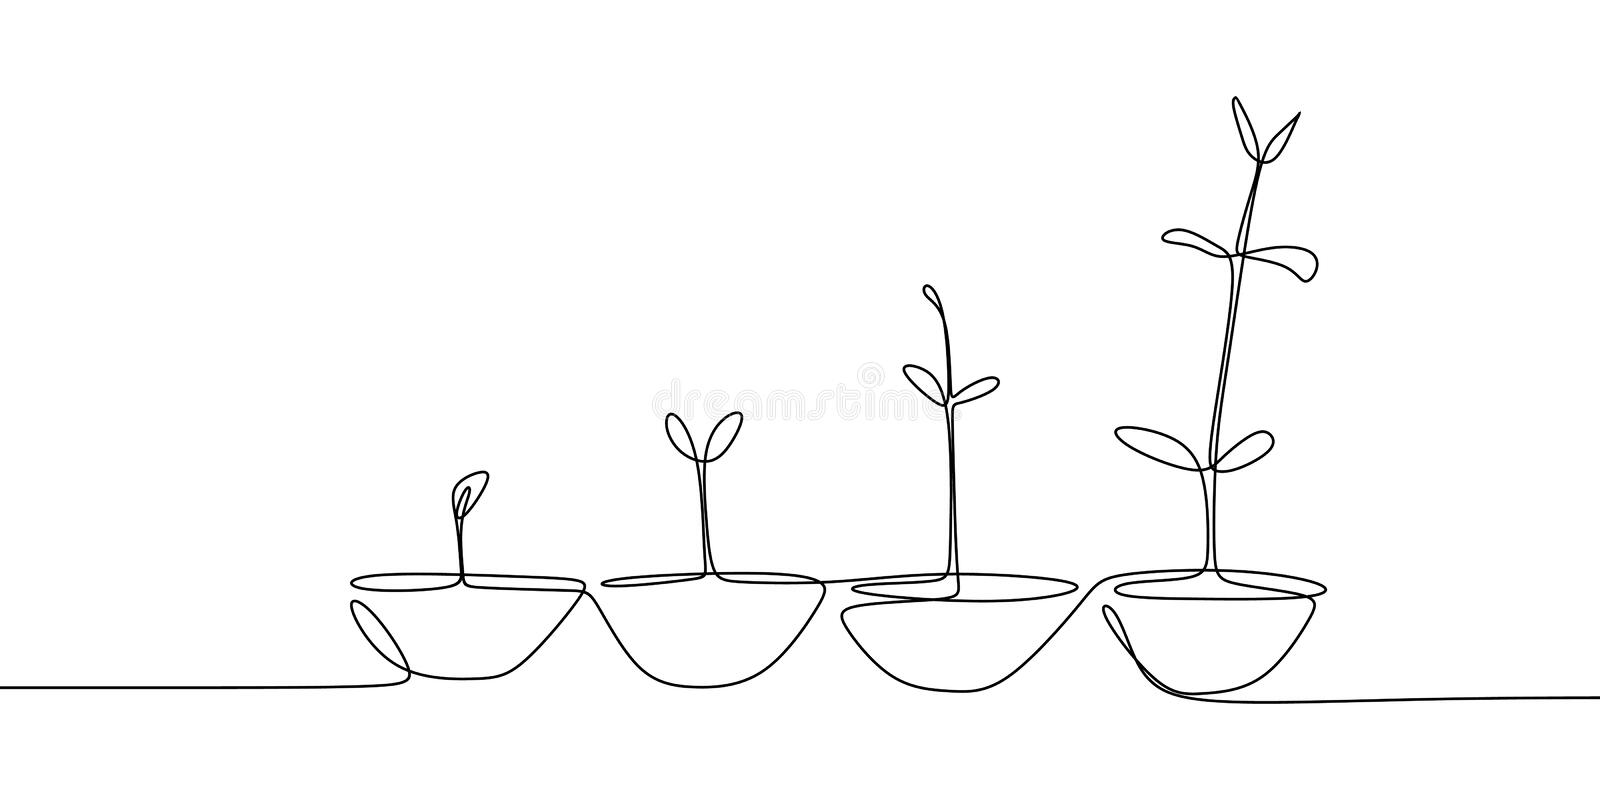 continuous line drawing of plant growth processes stock illustration